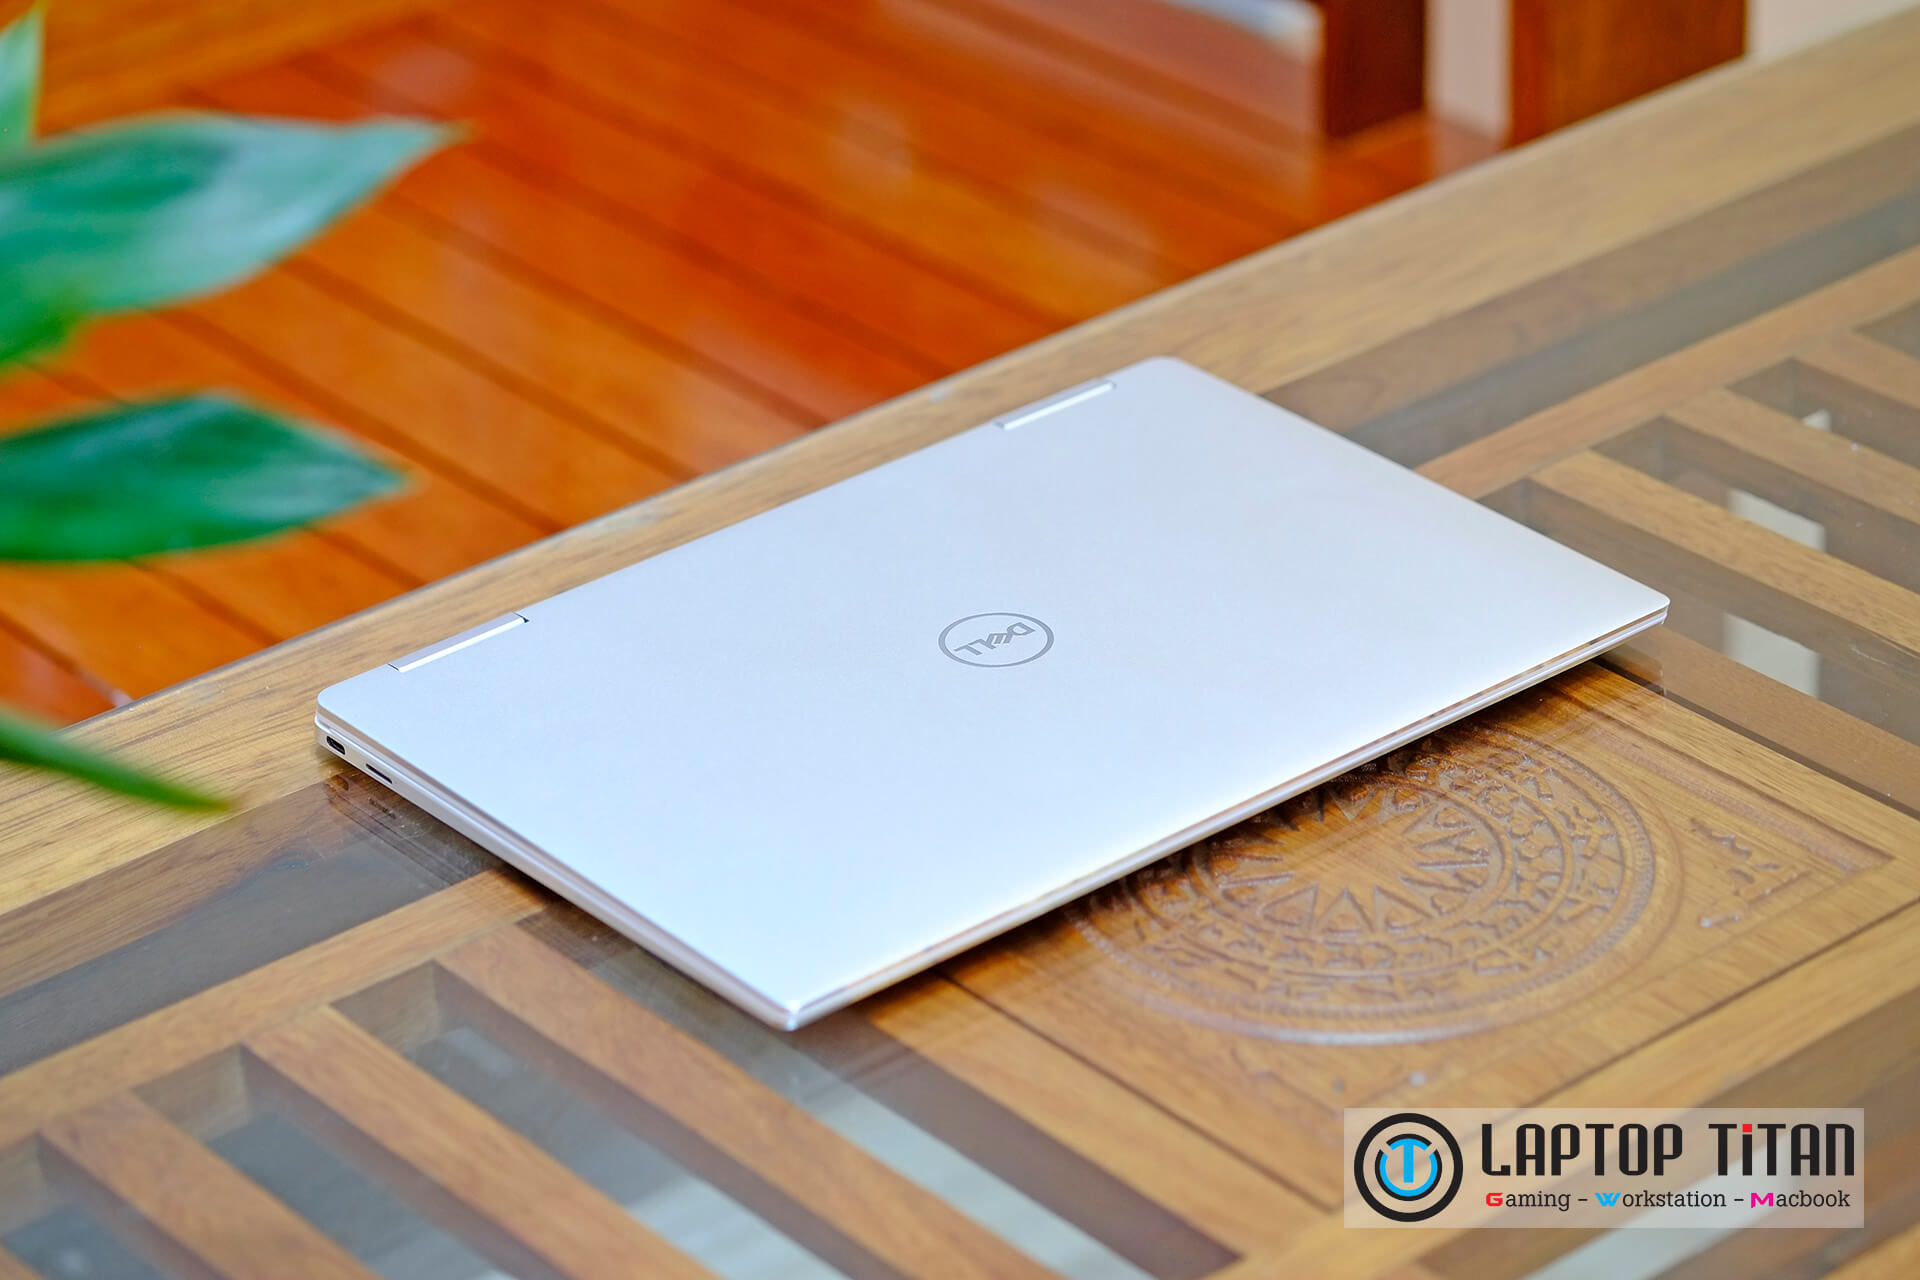 Dell Xps 13 7390 2-in-1 i7-1065G7 / 16GB / 512GB / FHD Touch / Likenew 99,9% 15812488_Dell-Xps-7390-2-in-1-005